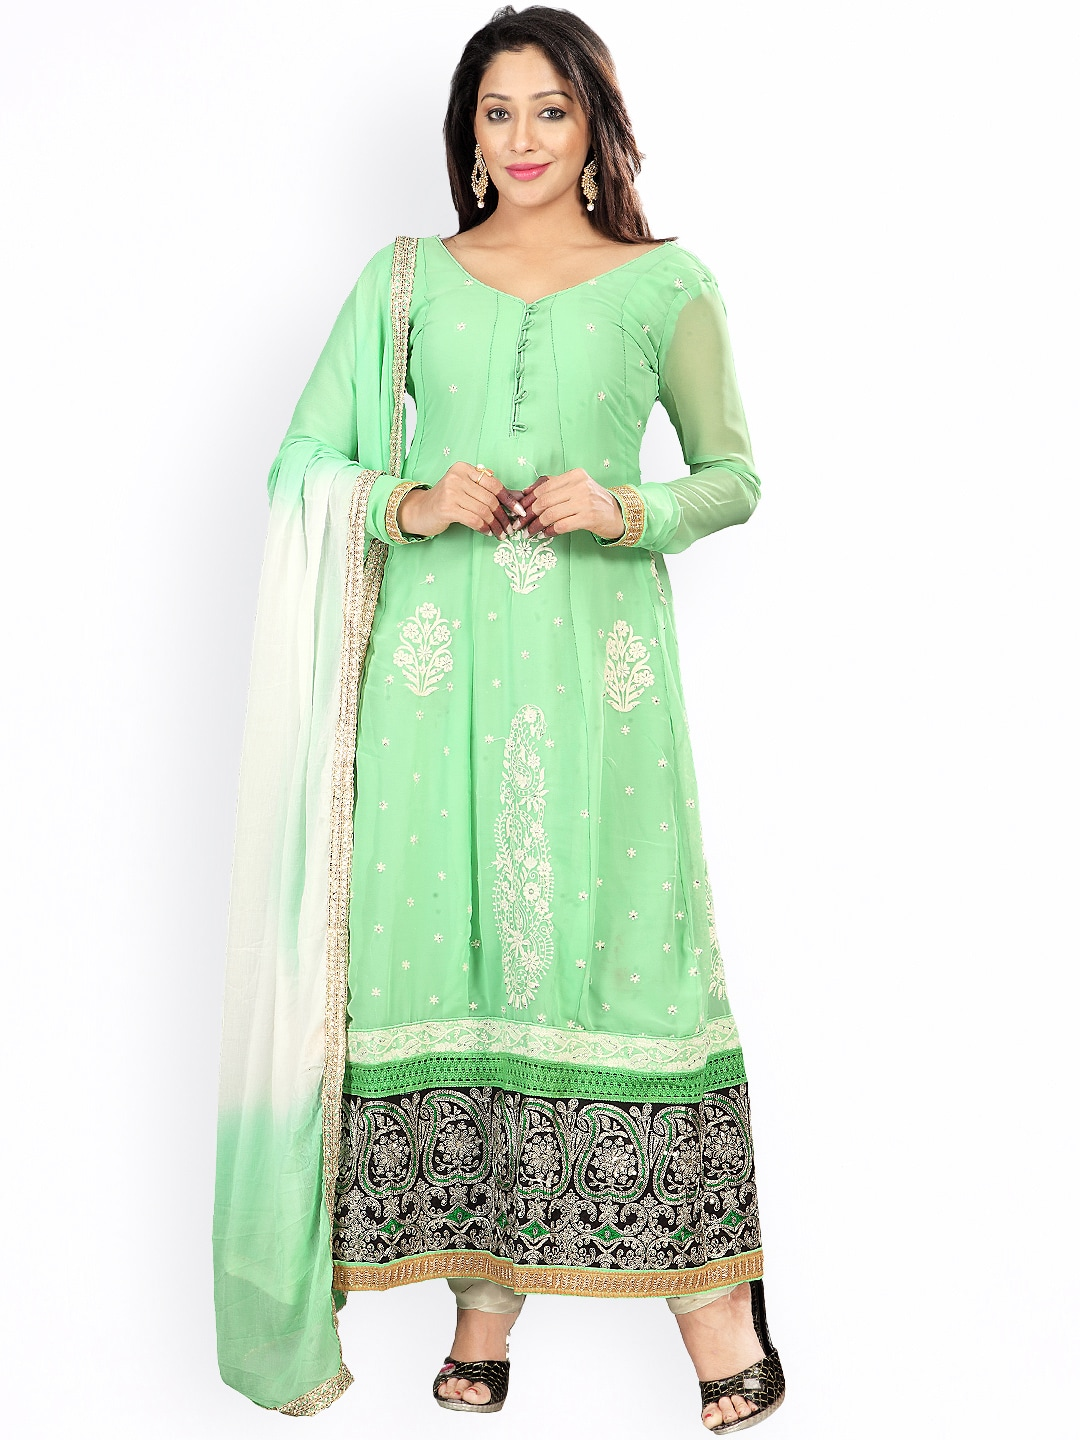 Florence Green & Off-White Embroidered Georgette Semi-Stitched Anarkali Dress Material image